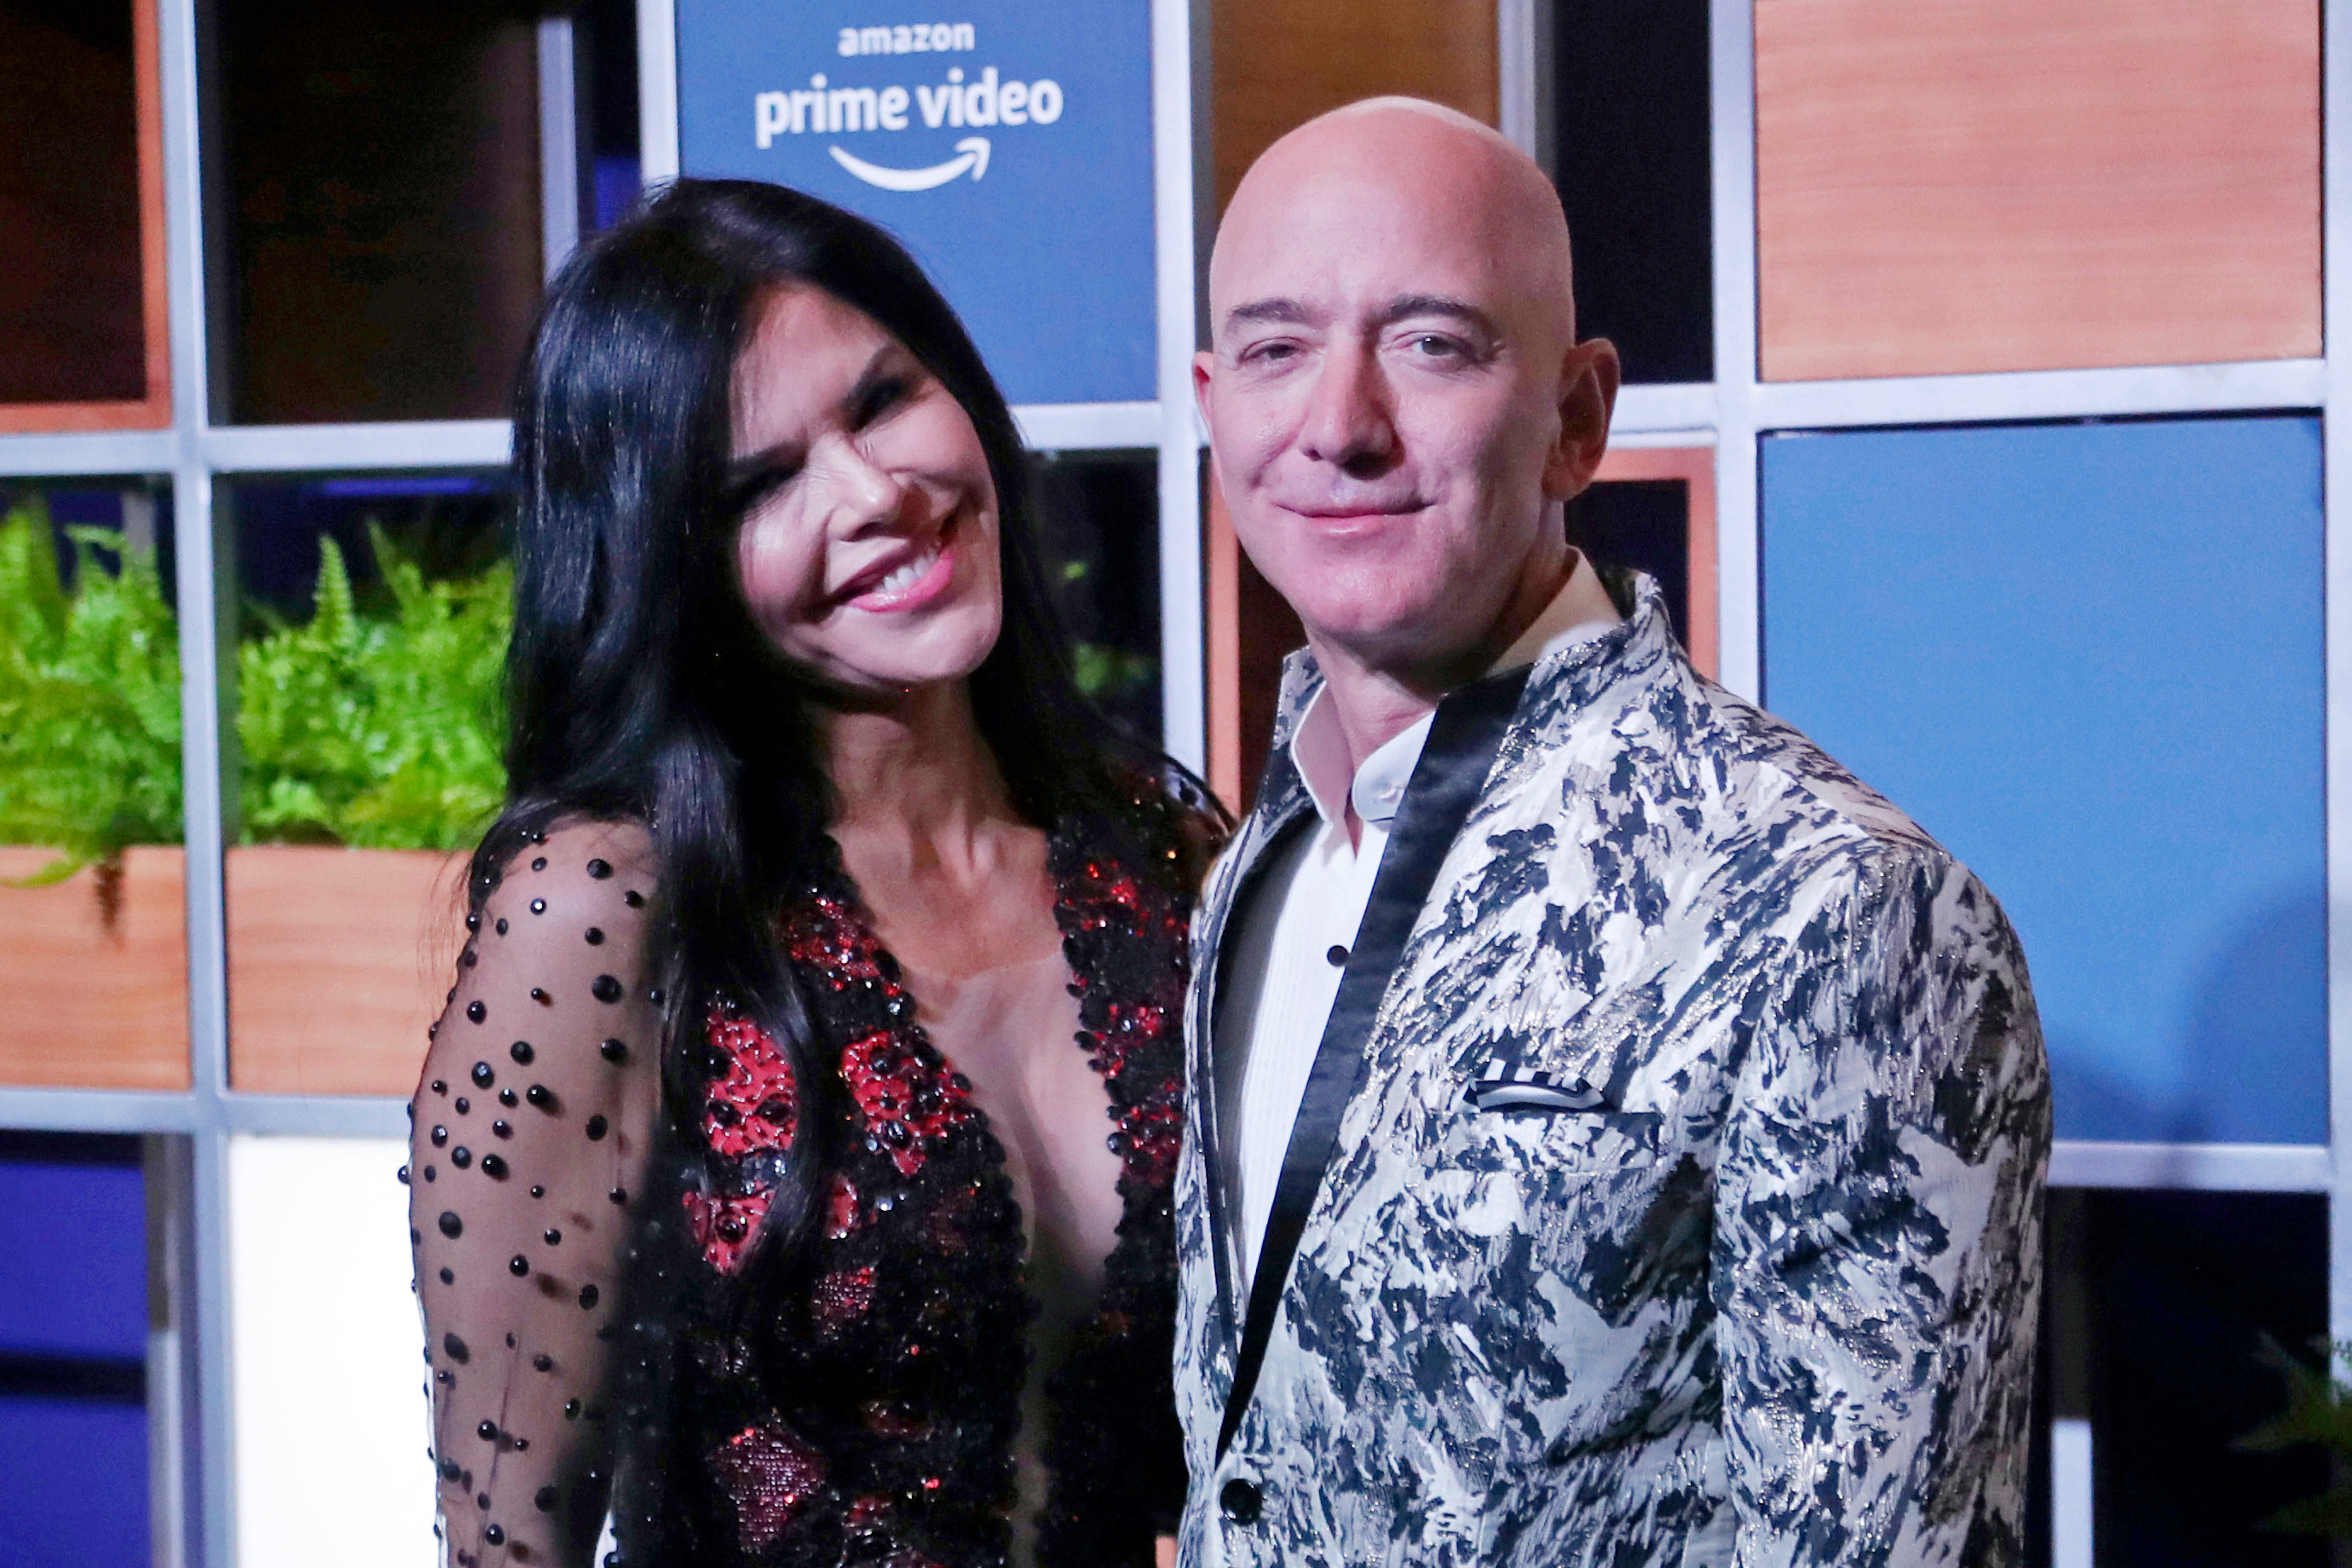 Brother of Jeff Bezos girlfriend attacked by man screaming 'f**k you' just days after filing lawsuit against Amazon boss